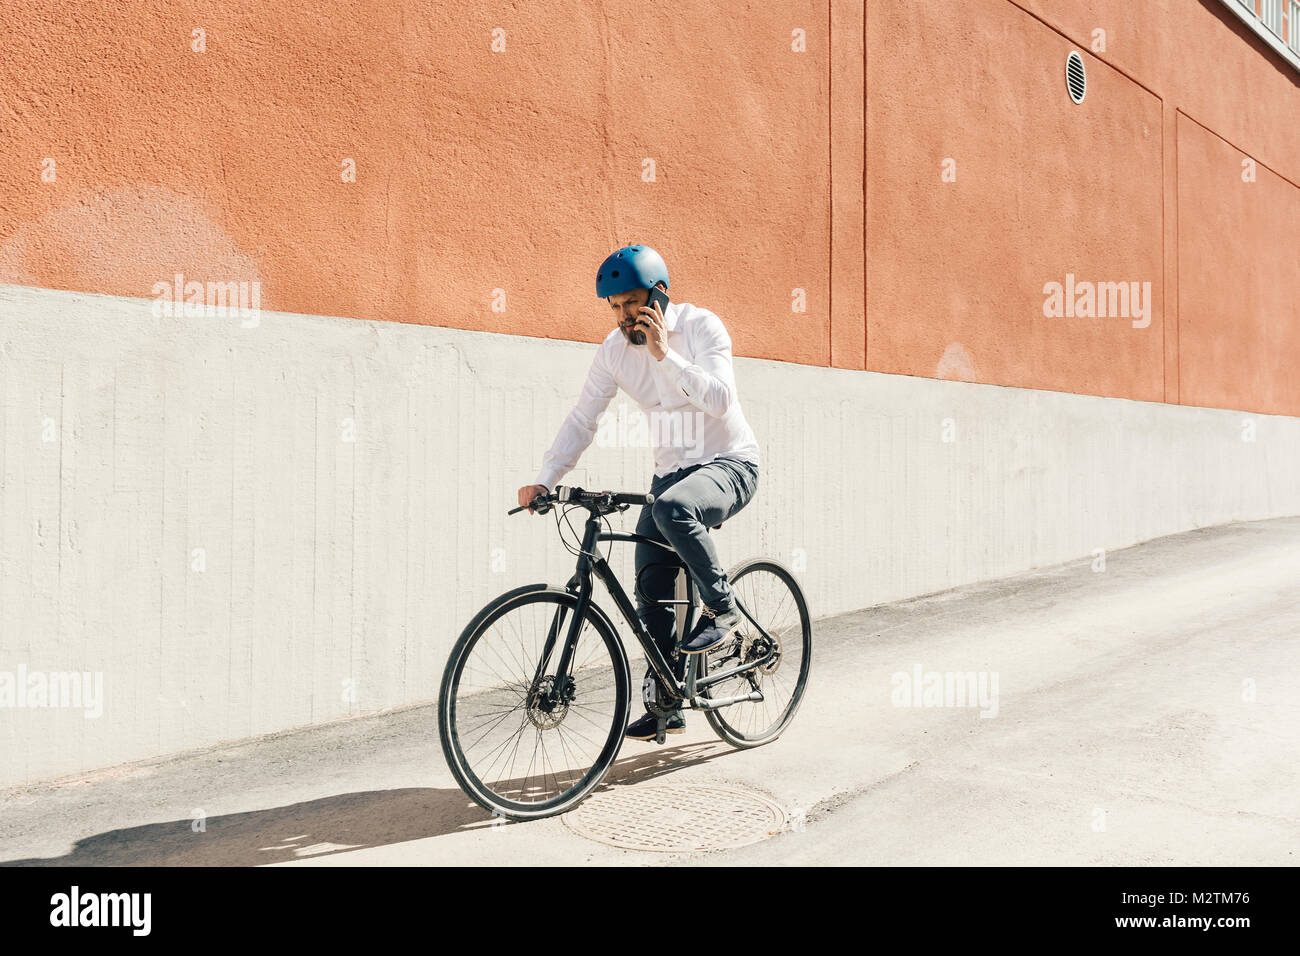 Man on smart phone while bicycling in Sweden - Stock Image